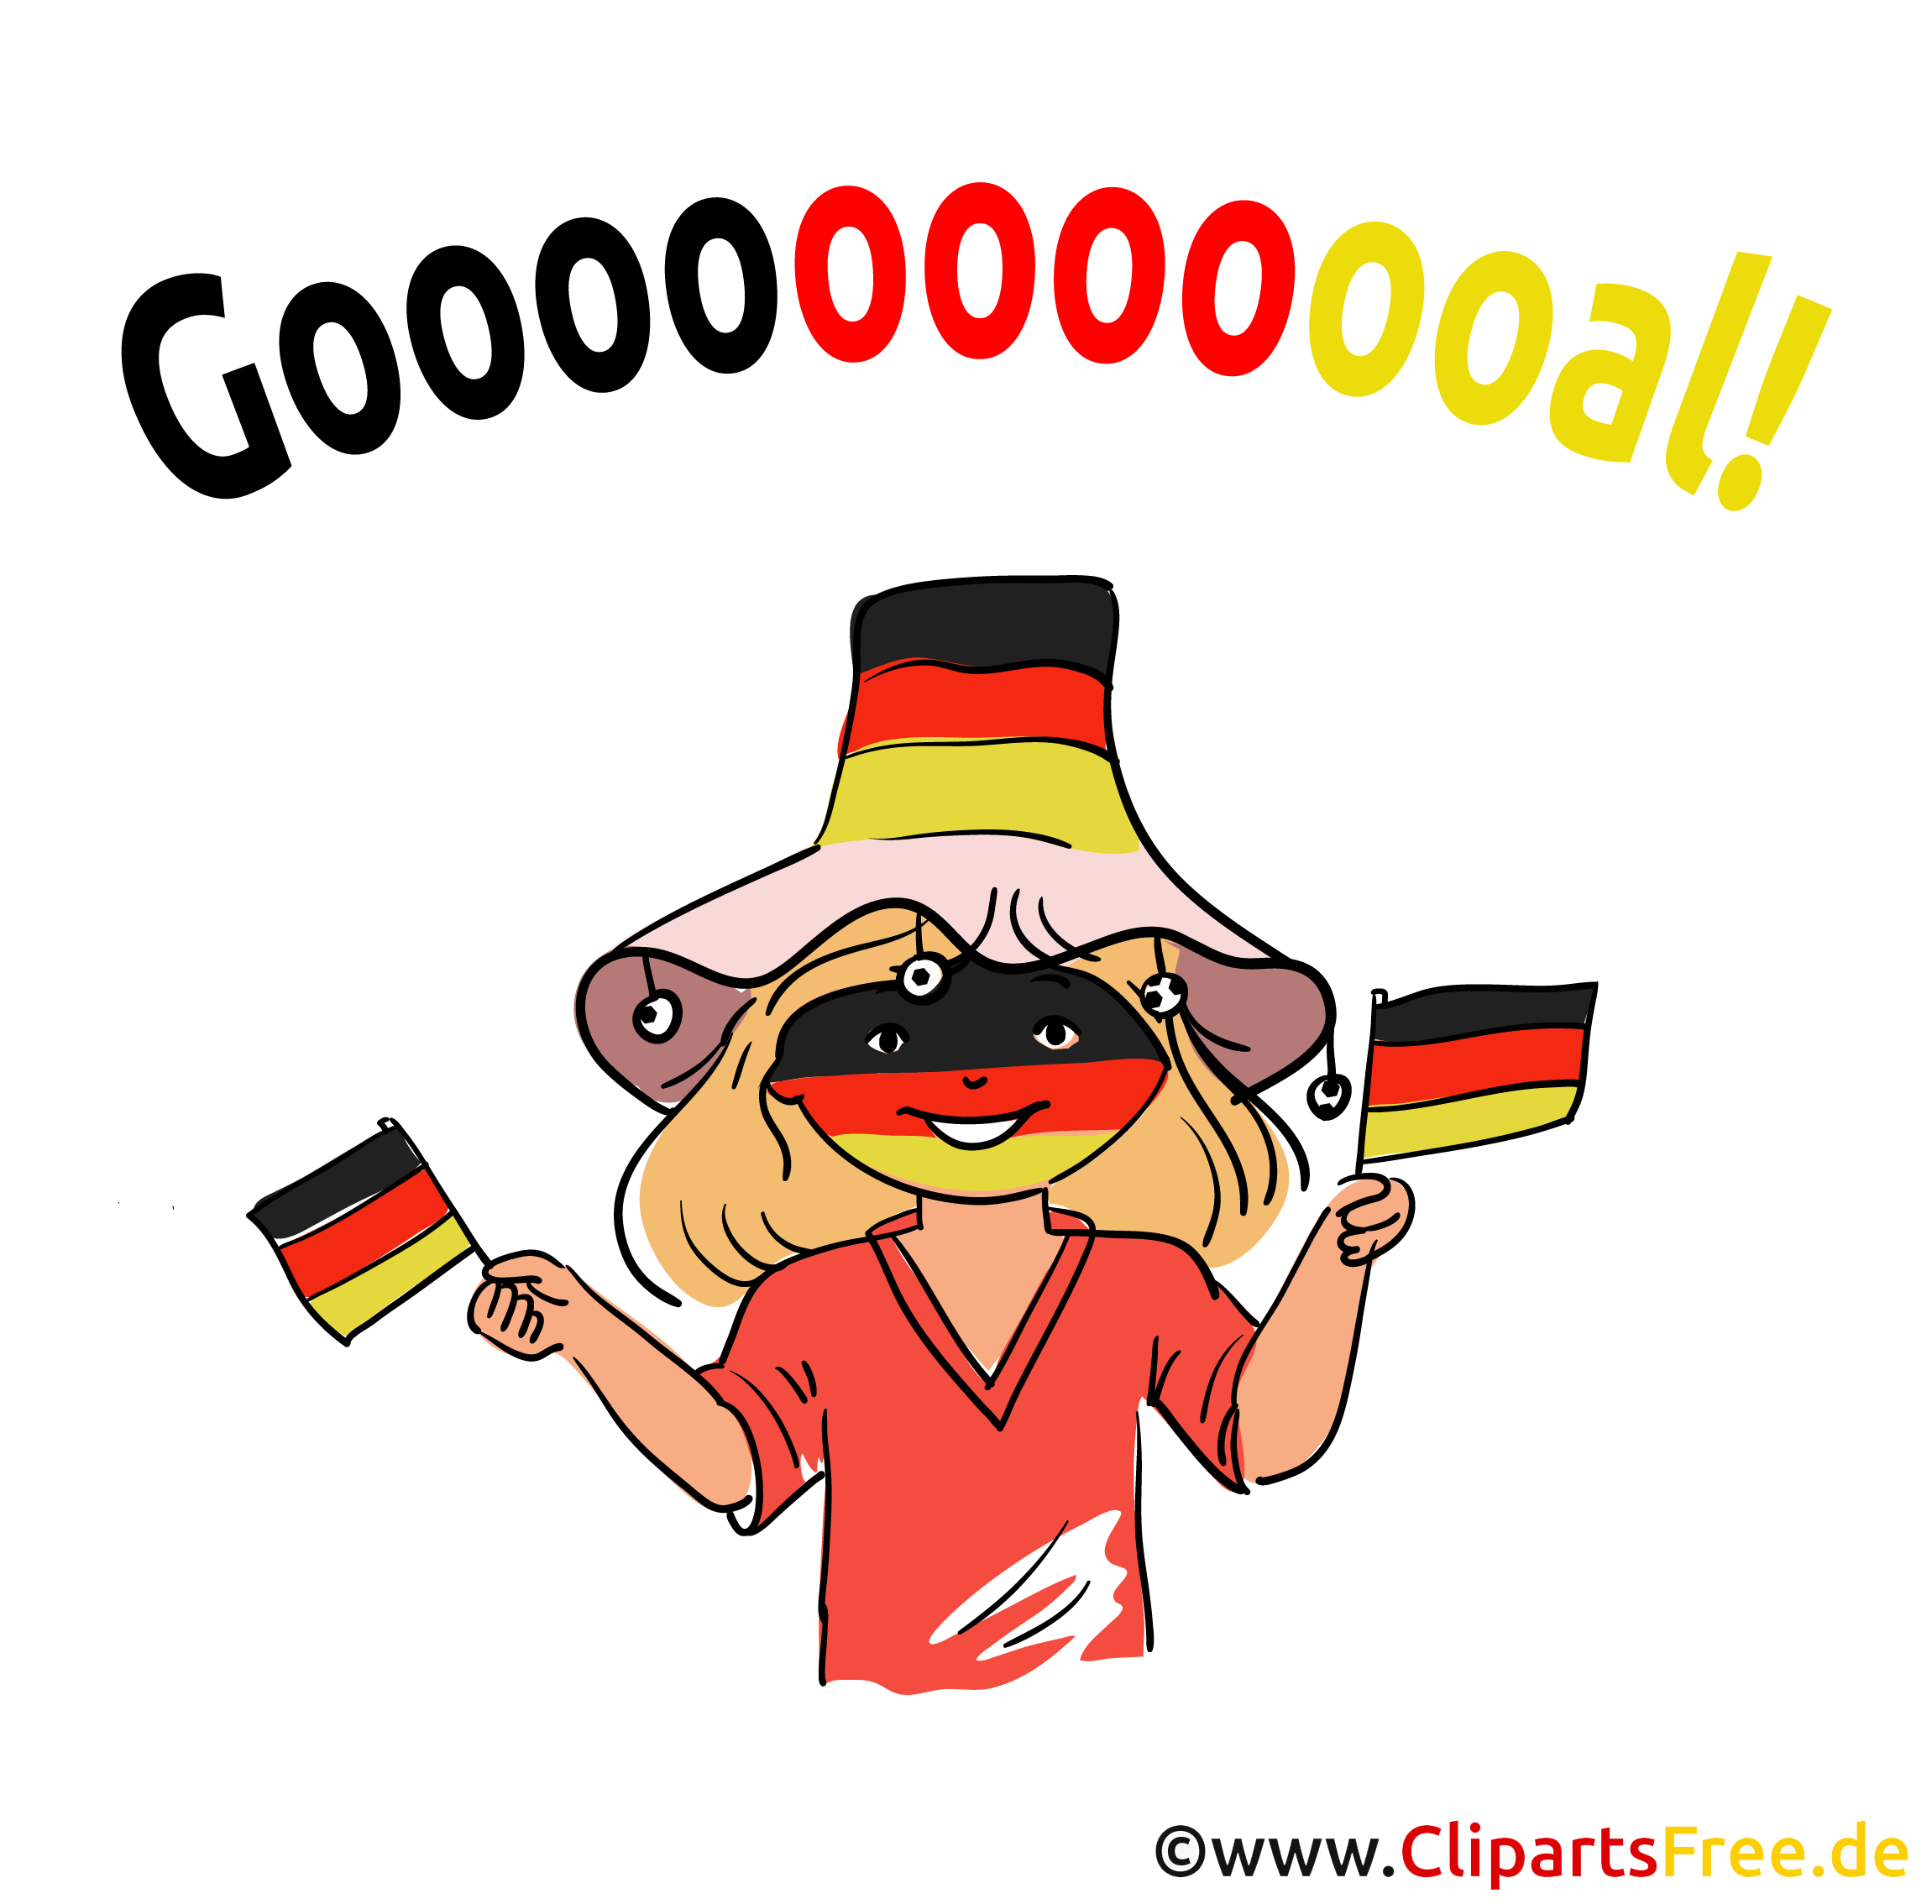 German girl football fan clip art, picture, image